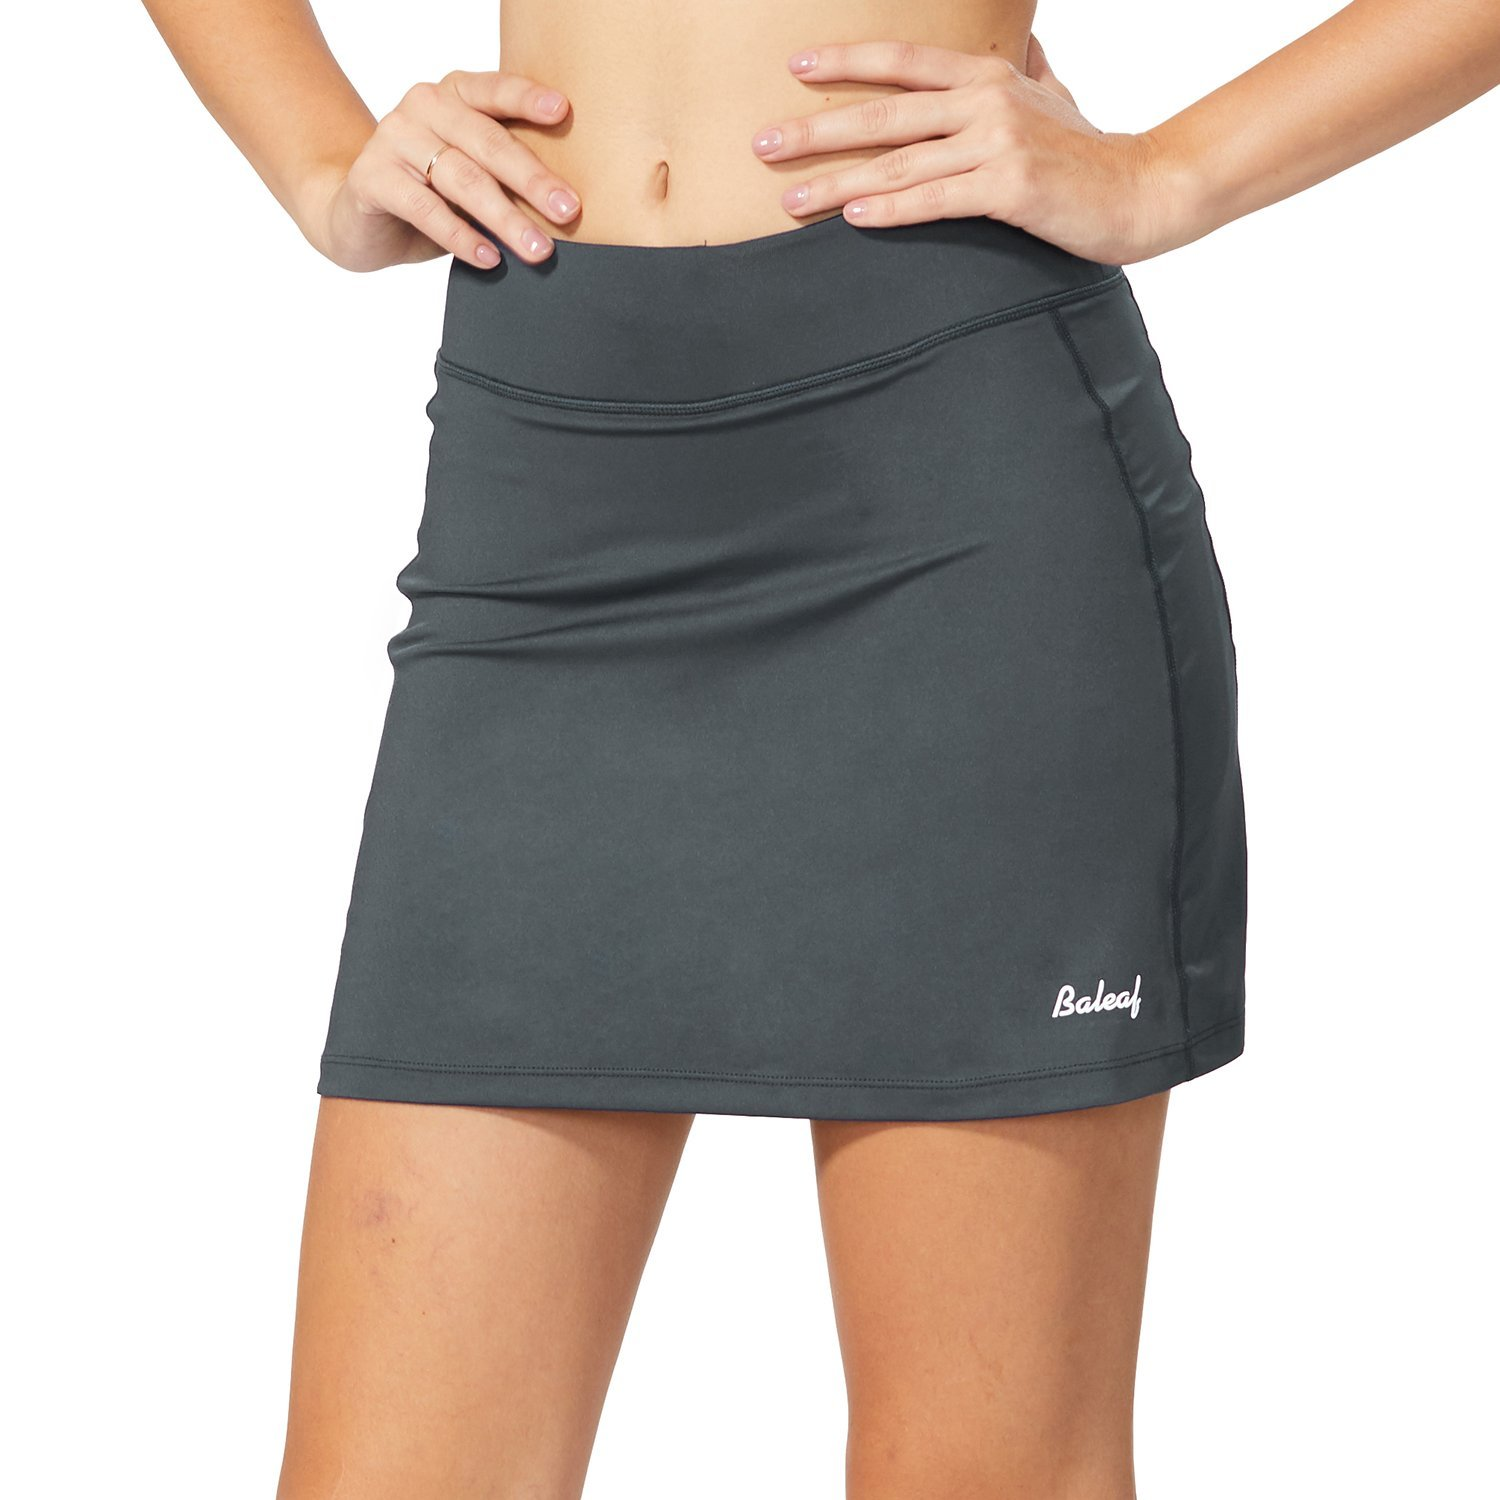 BALEAF Women's Active Athletic Skort Lightweight Skirt with Pockets for Running Tennis Golf Workout Gray Size L by BALEAF